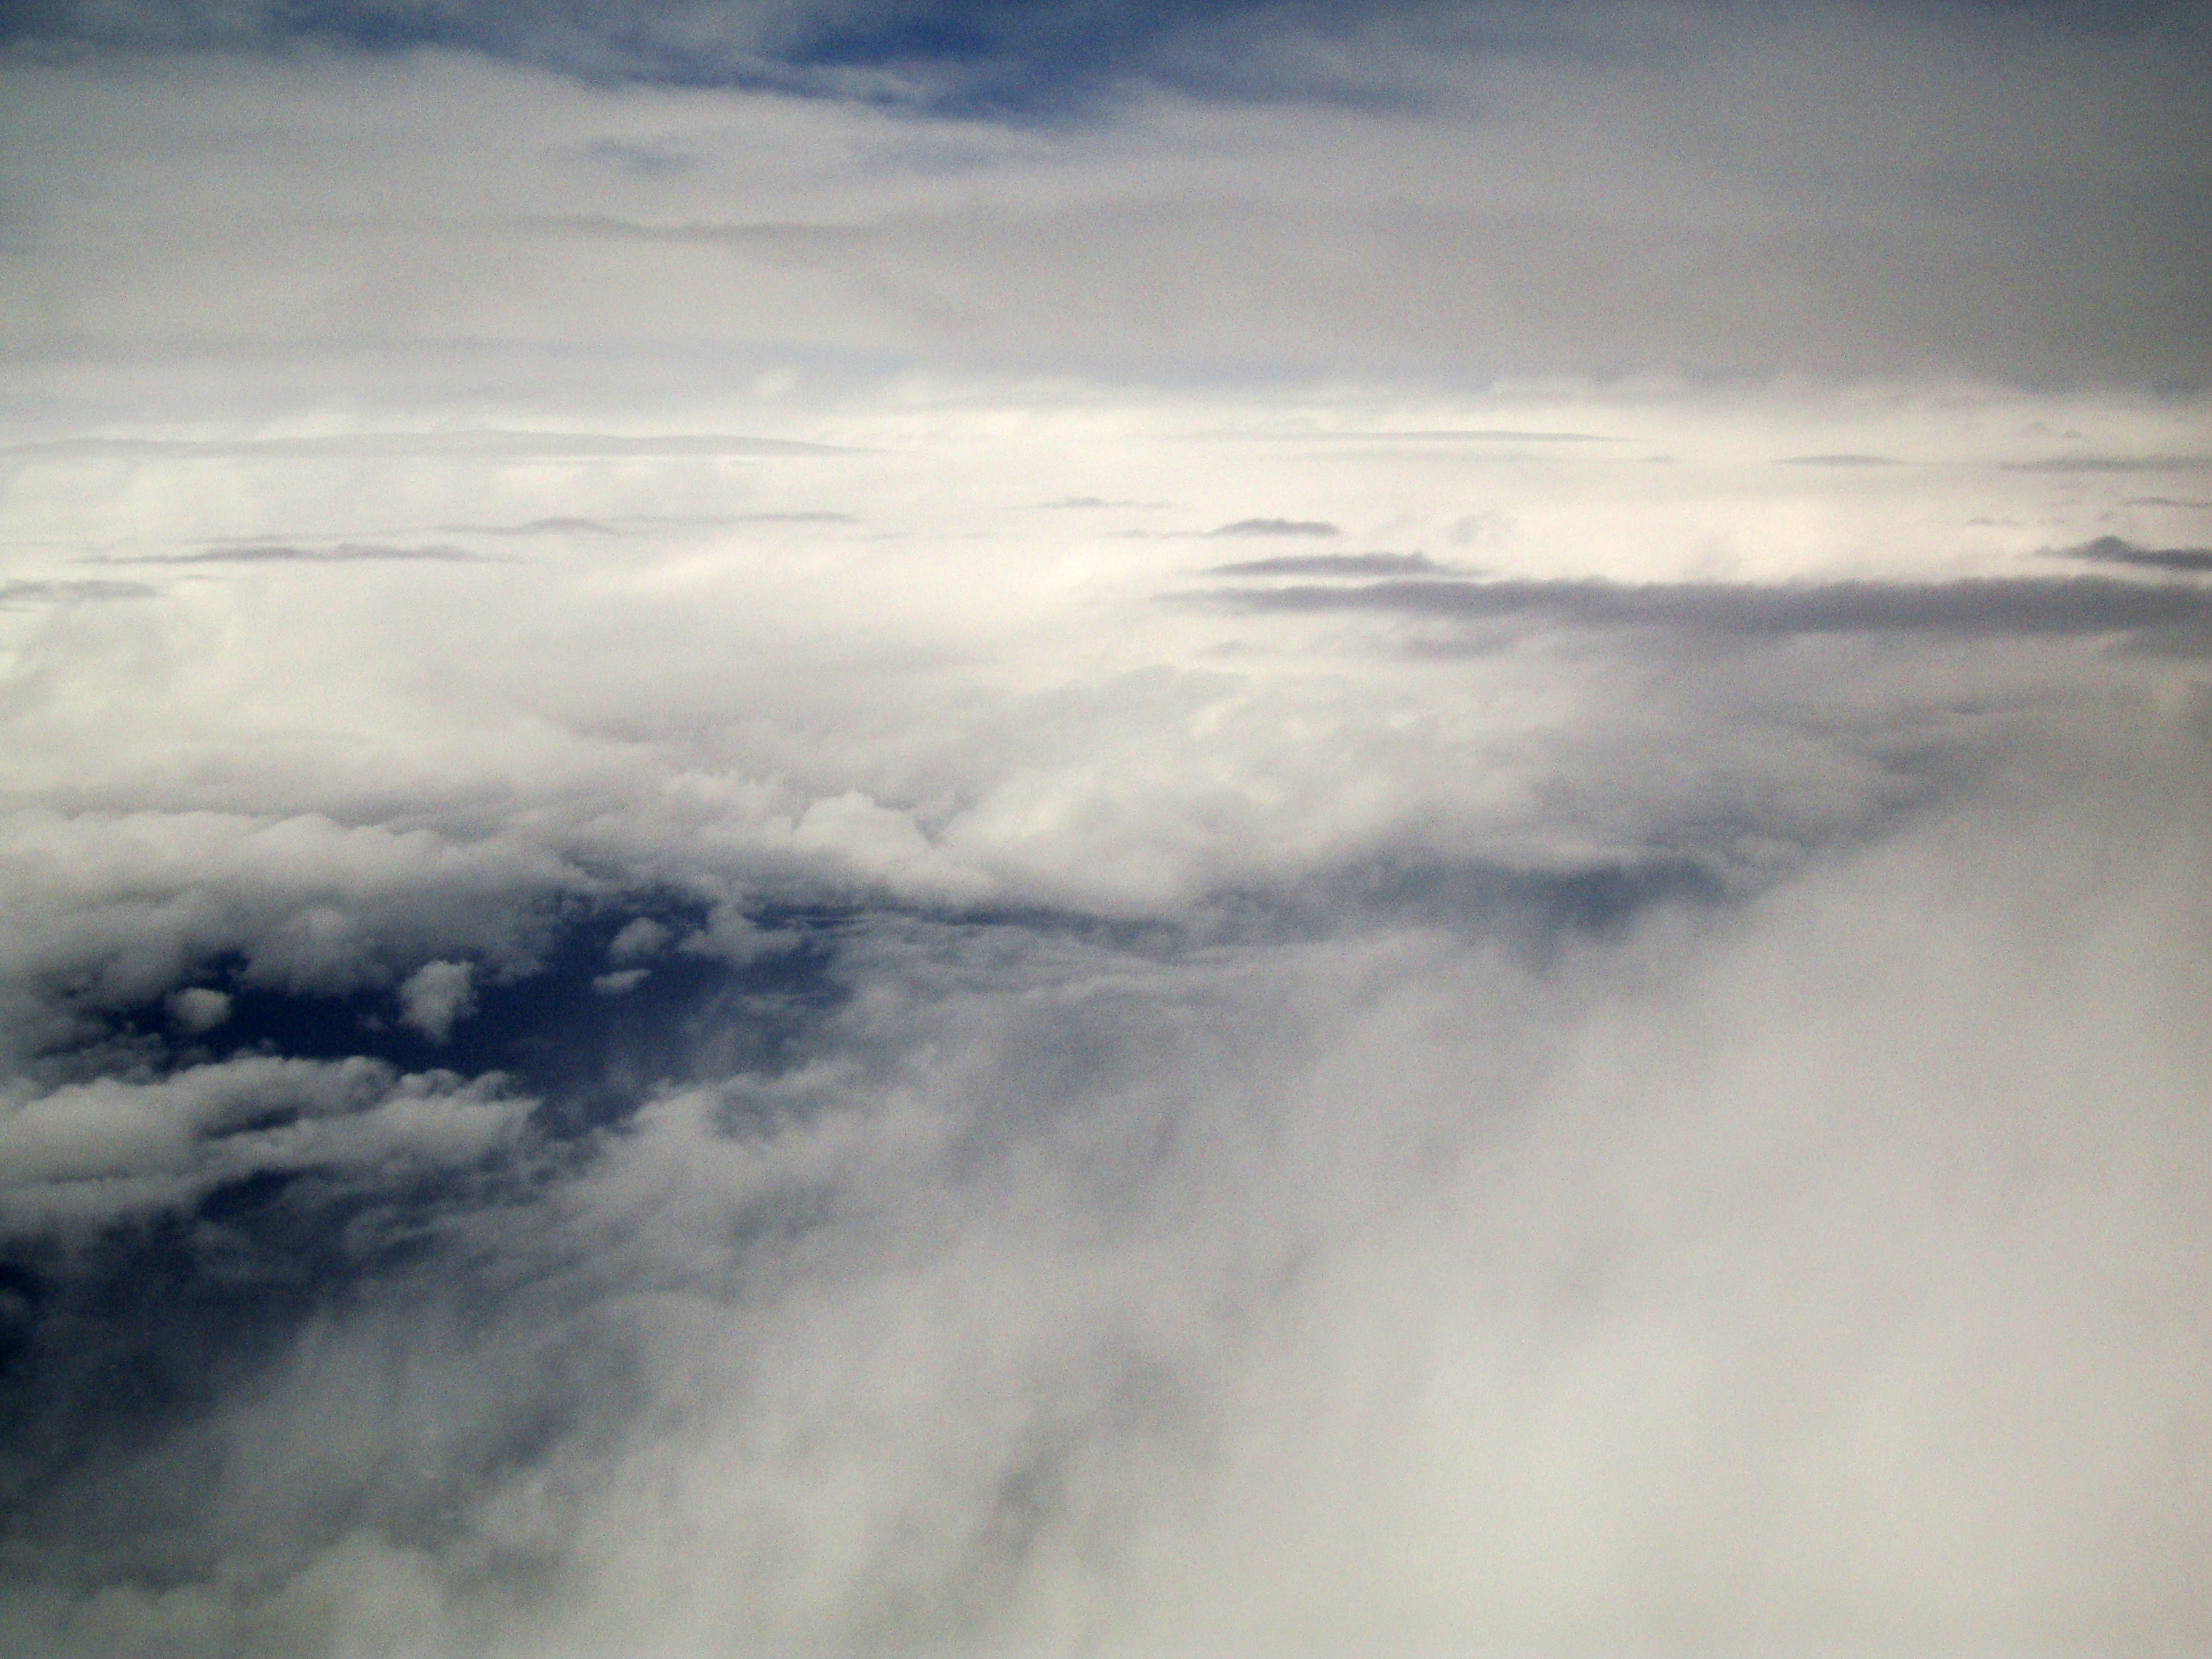 Textures Clouds Formations Sky Storms Weather Phenomena Aerial Views 17